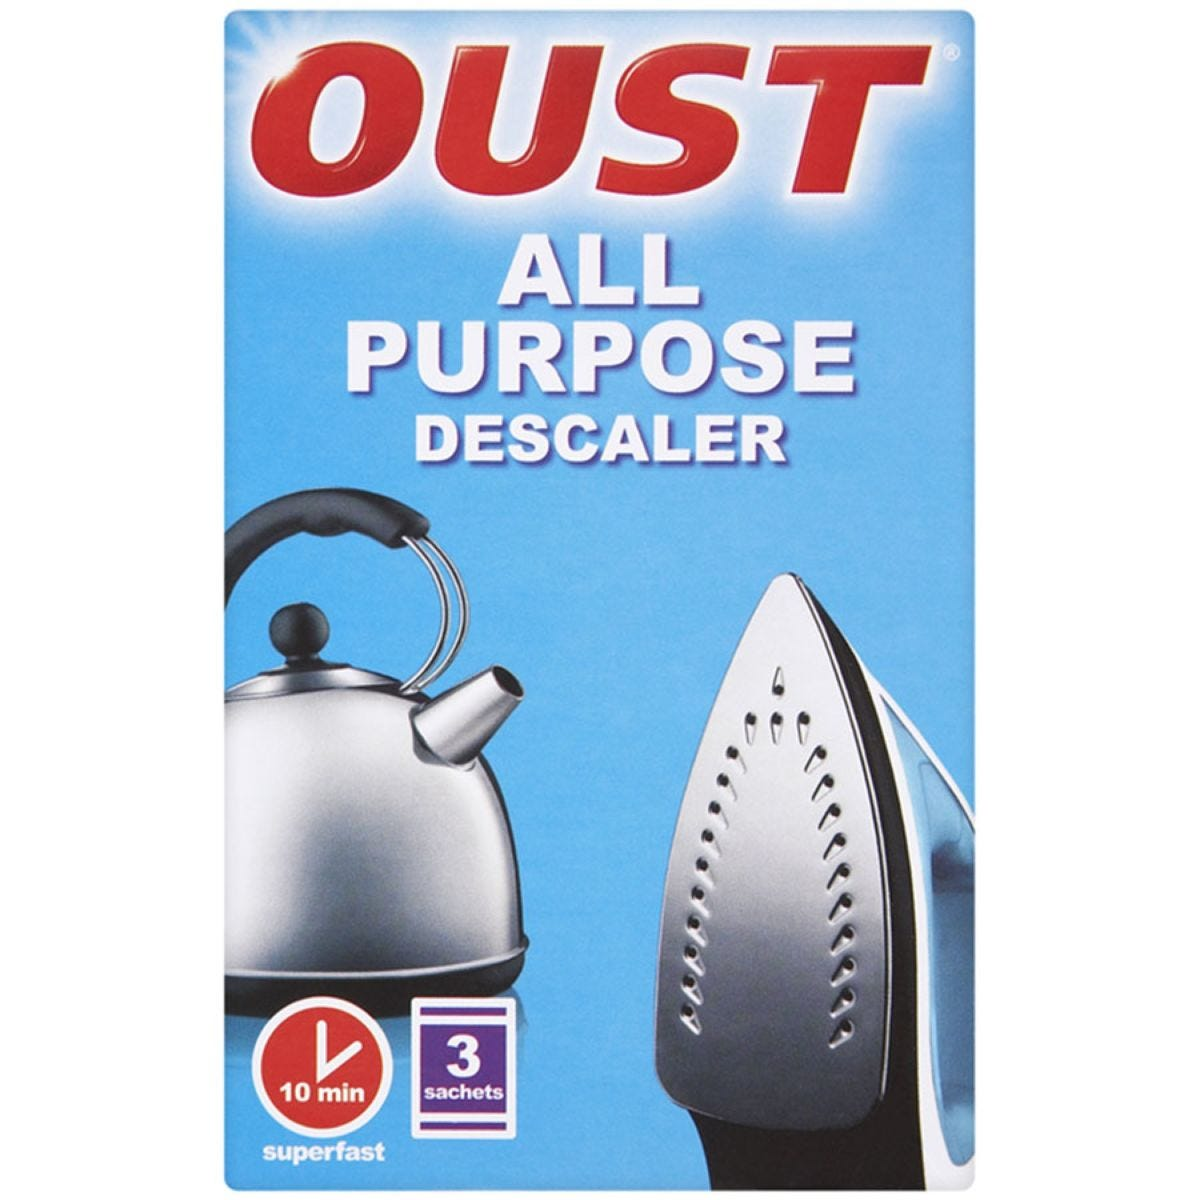 Oust All Purpose Descaler Sachets - 3 Pack